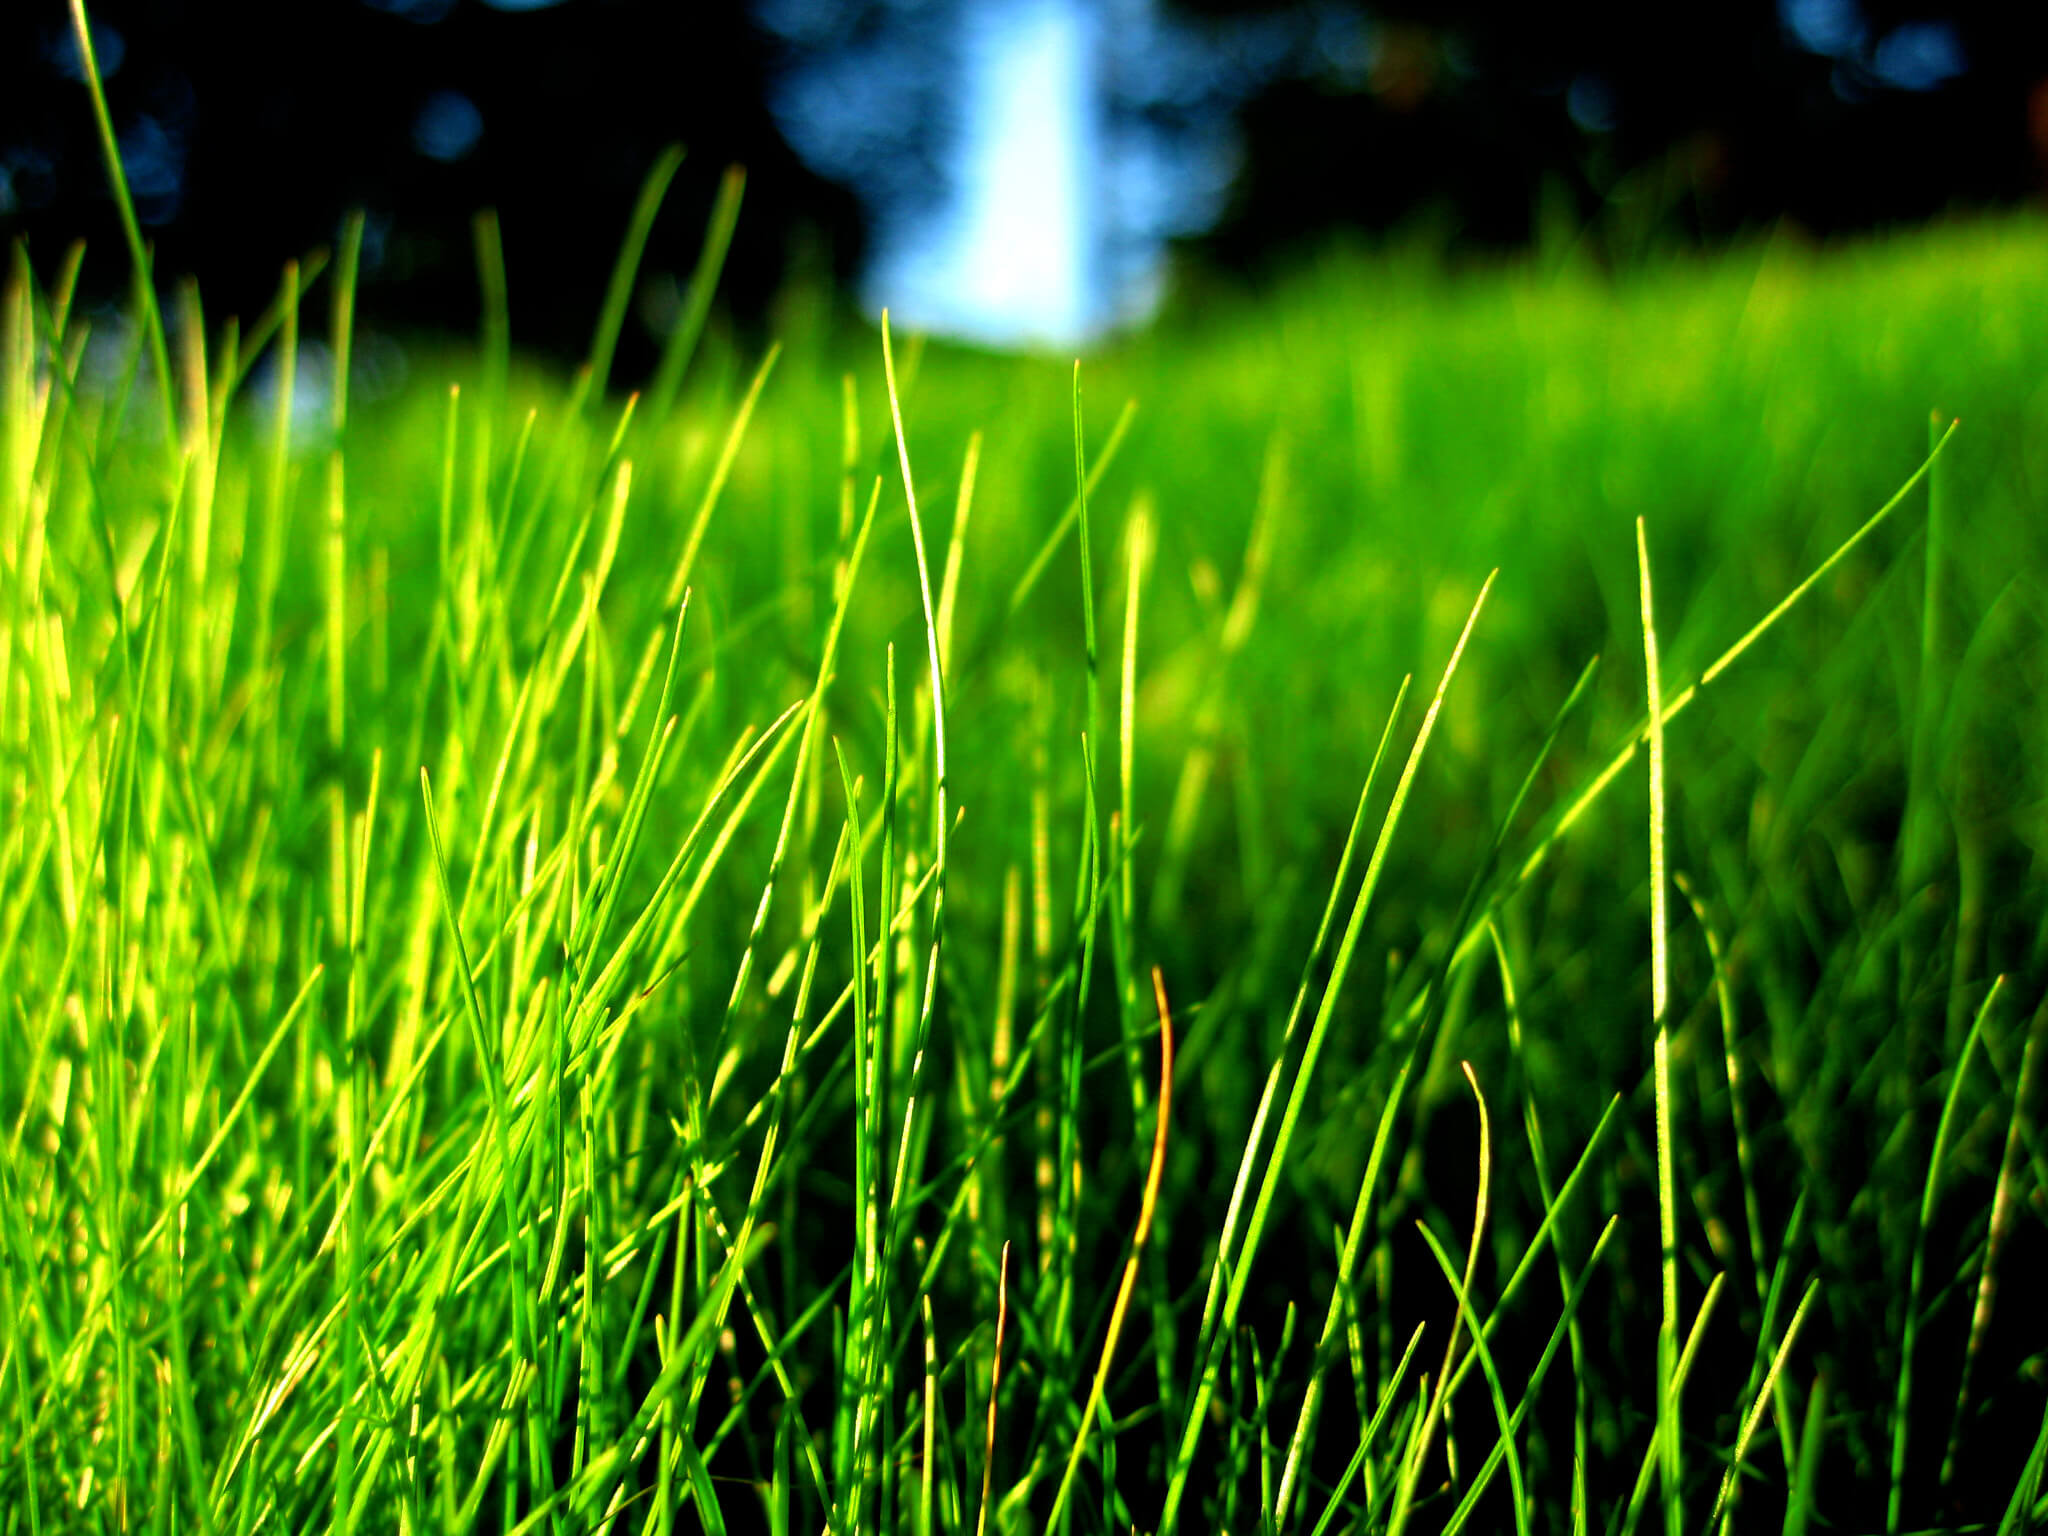 When It Comes To Choosing A Gr Type Suitable For Atlanta S Climate There Are Variety Of Options Available Many Homeowners Choose Fescue As Their Turf